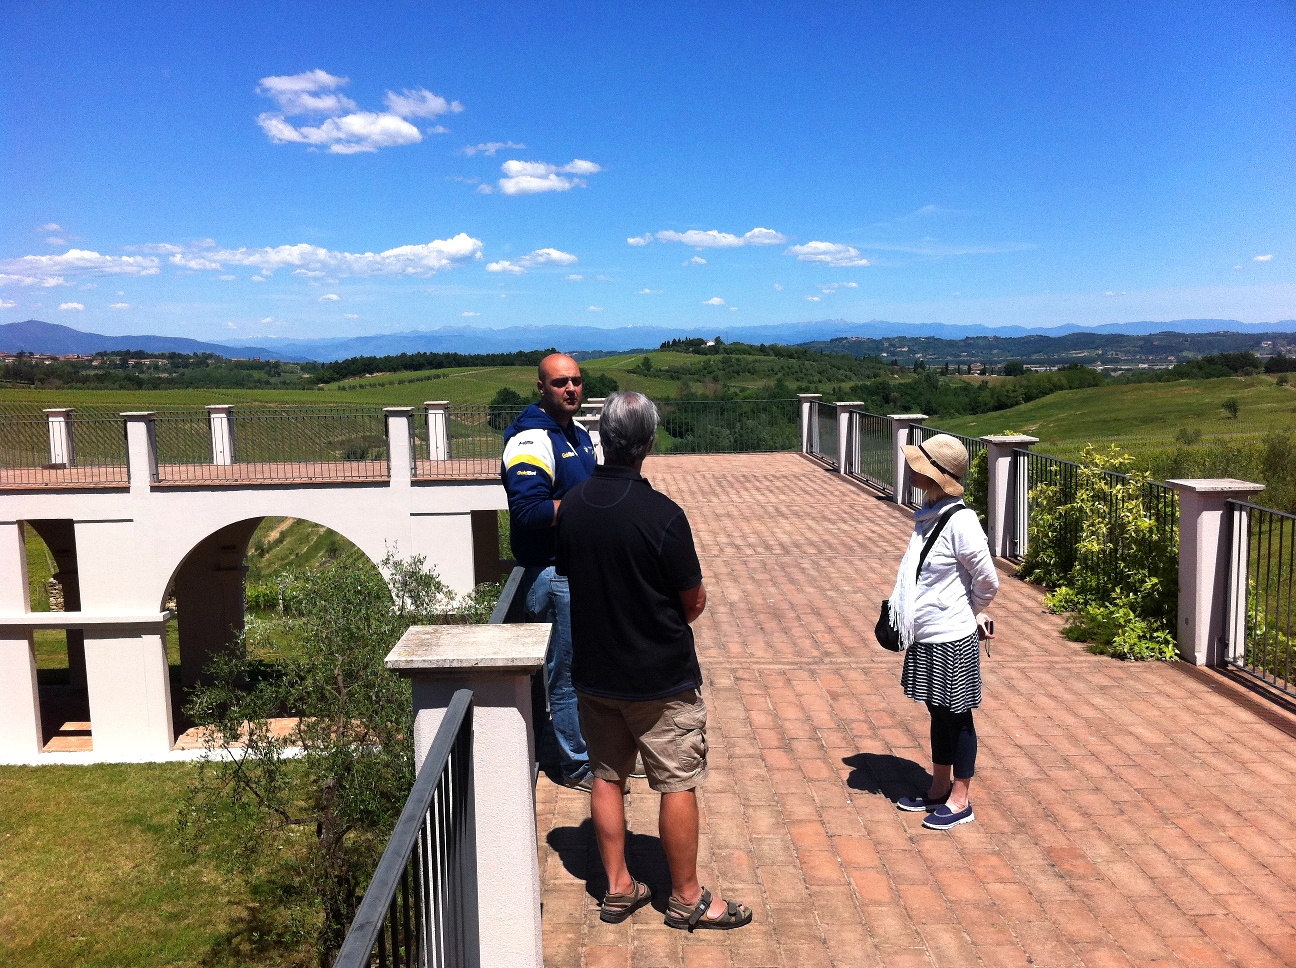 A walk in the terrace of a winery